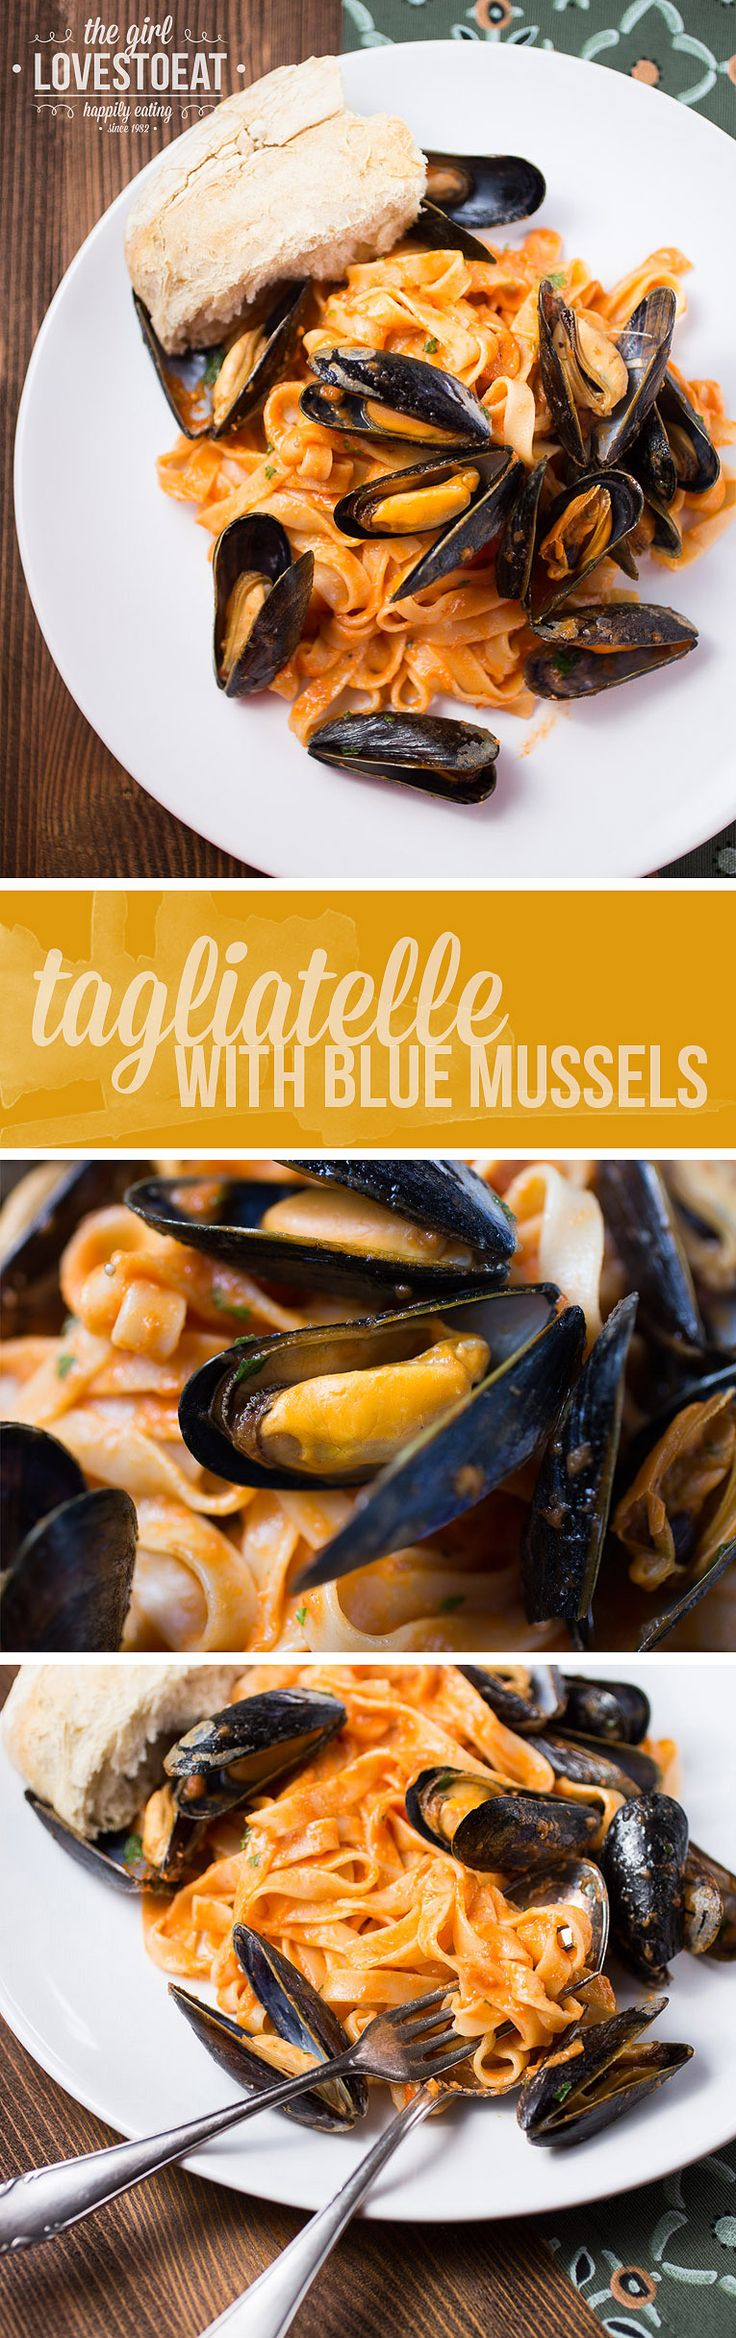 Tagliatelle in a spicy tomato sauce topped with some juicy, garlicy blue mussels.